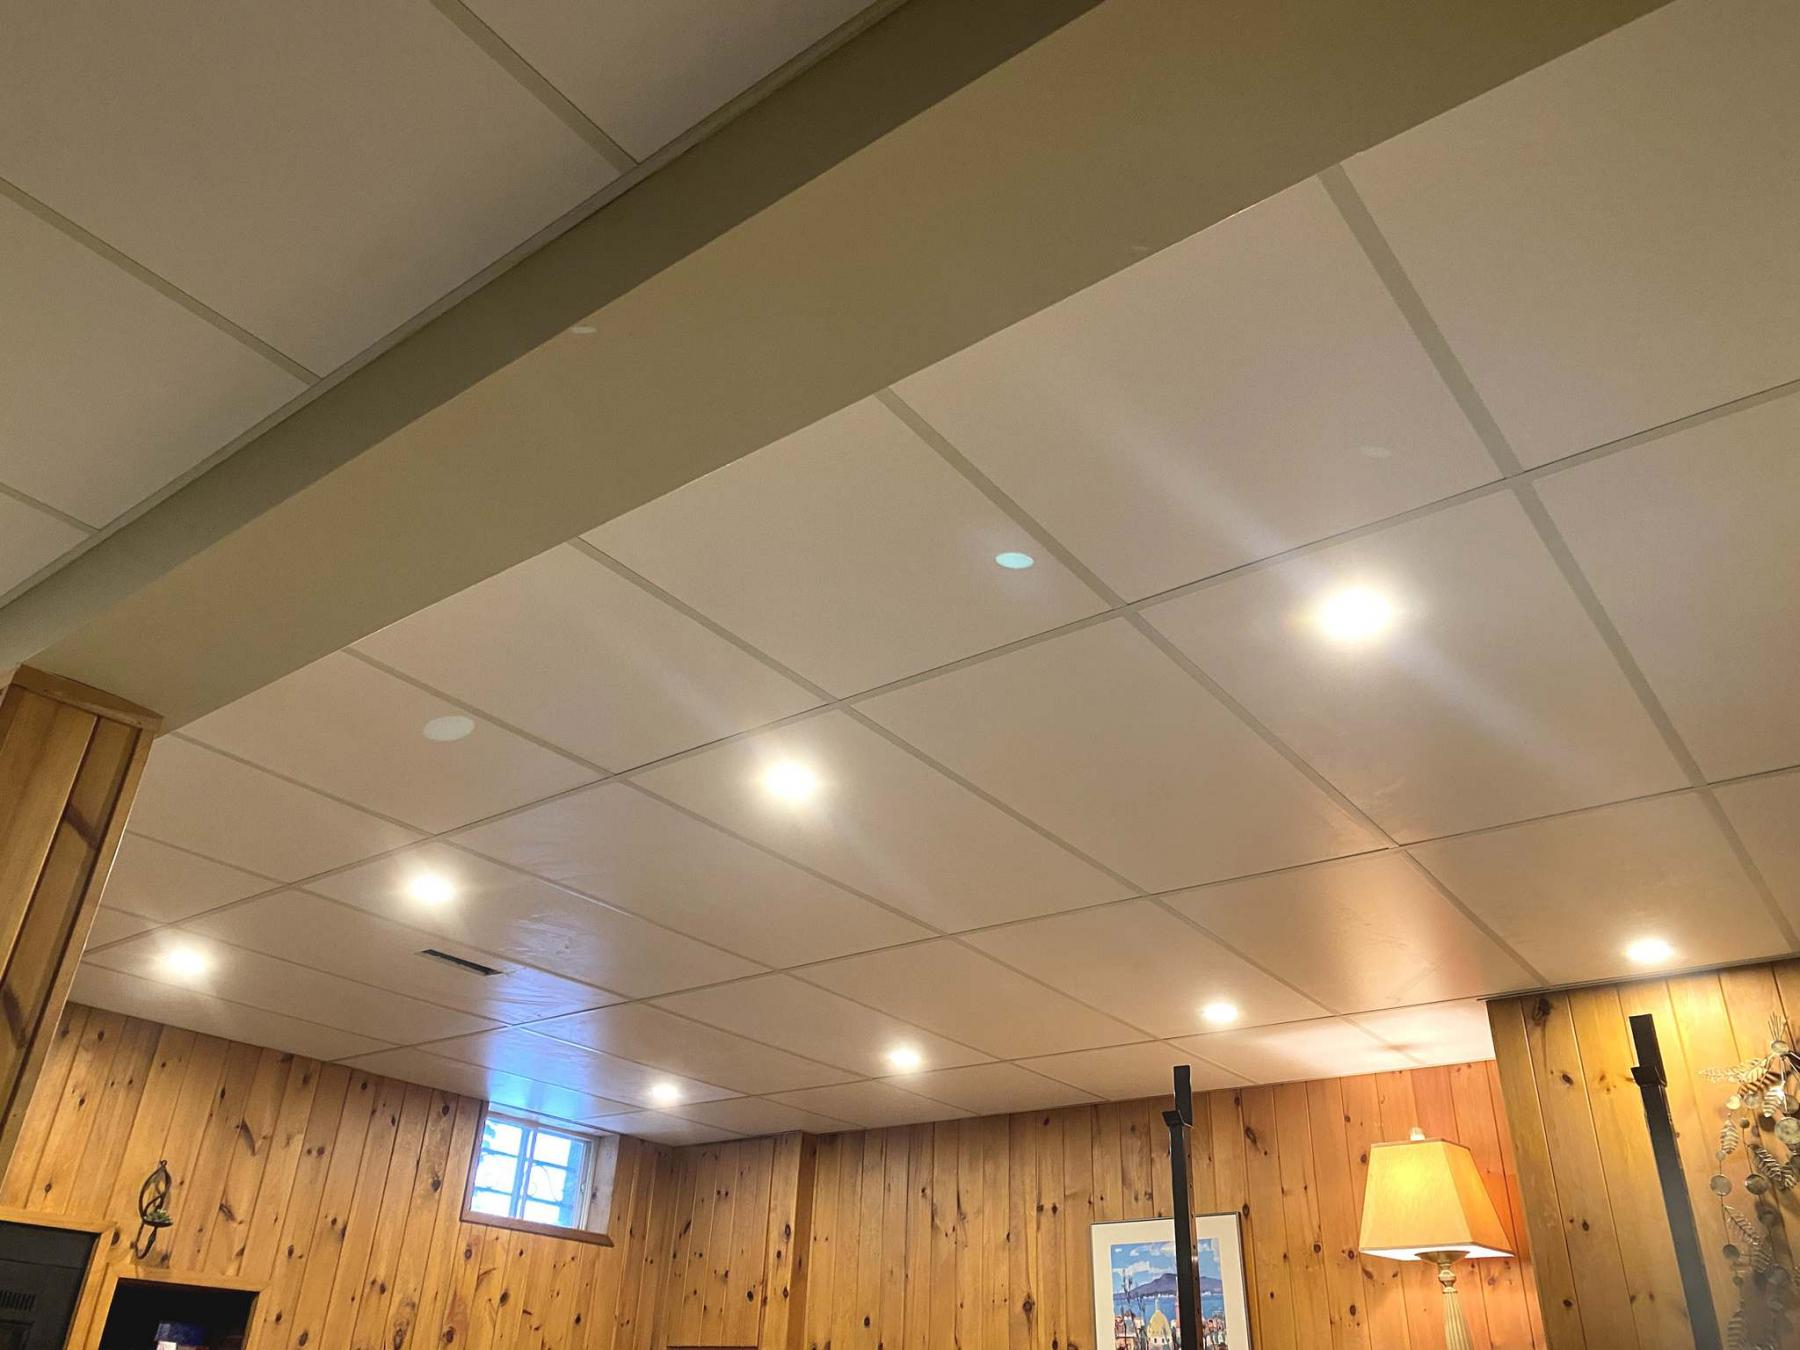 <p>Photos by Marc LaBossiere / Winnipeg Free Press</p><p>The new LED lighting in the rec room is light years brighter than the previous pot lights.</p>